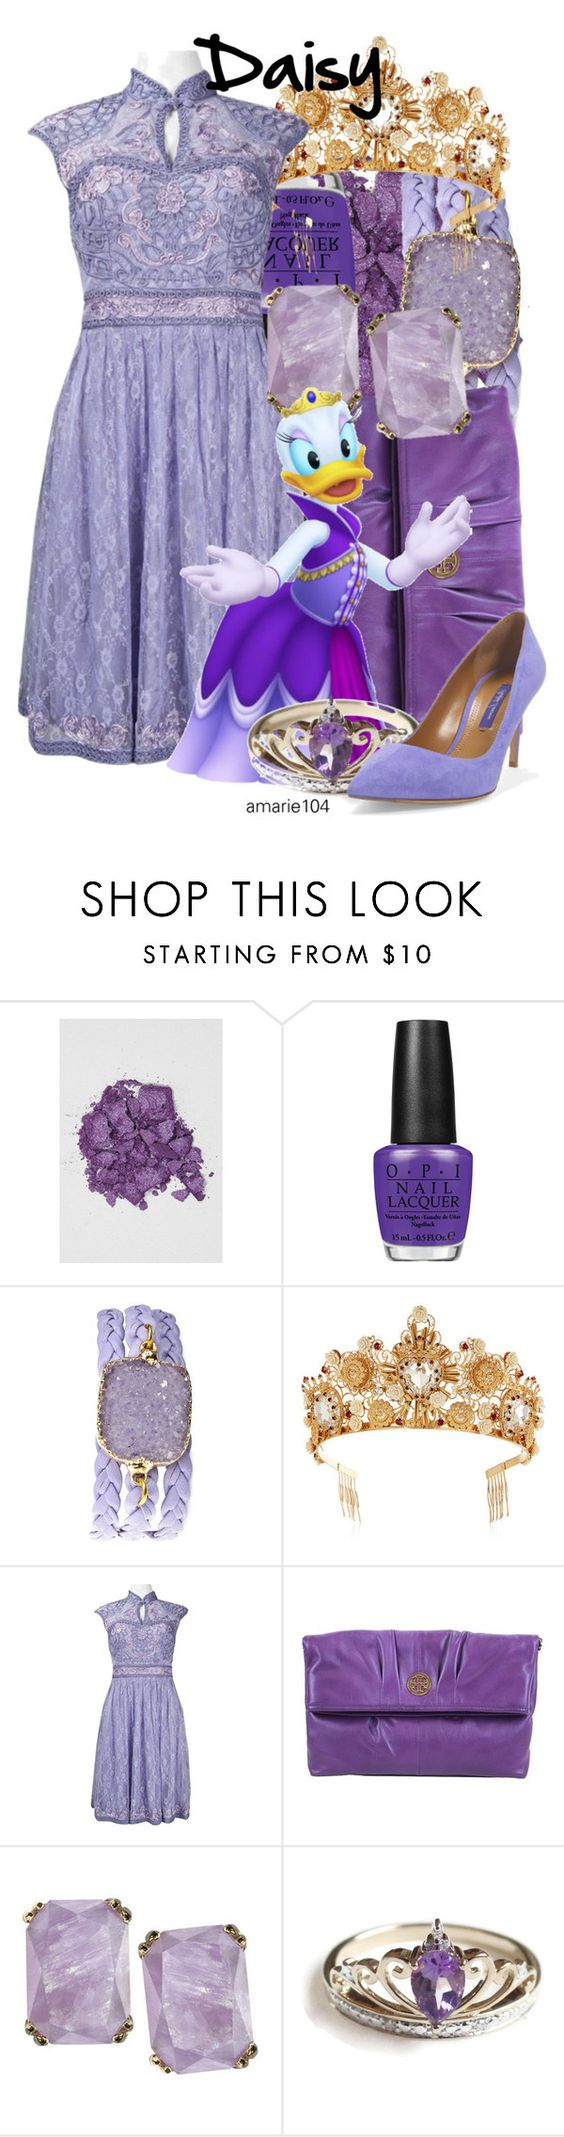 """Daisy"" by amarie104 ❤ liked on Polyvore featuring Anna Sui, OPI, Alexandra Beth Designs, Dolce&Gabbana, Sue Wong, Tory Burch and Ralph Lauren"